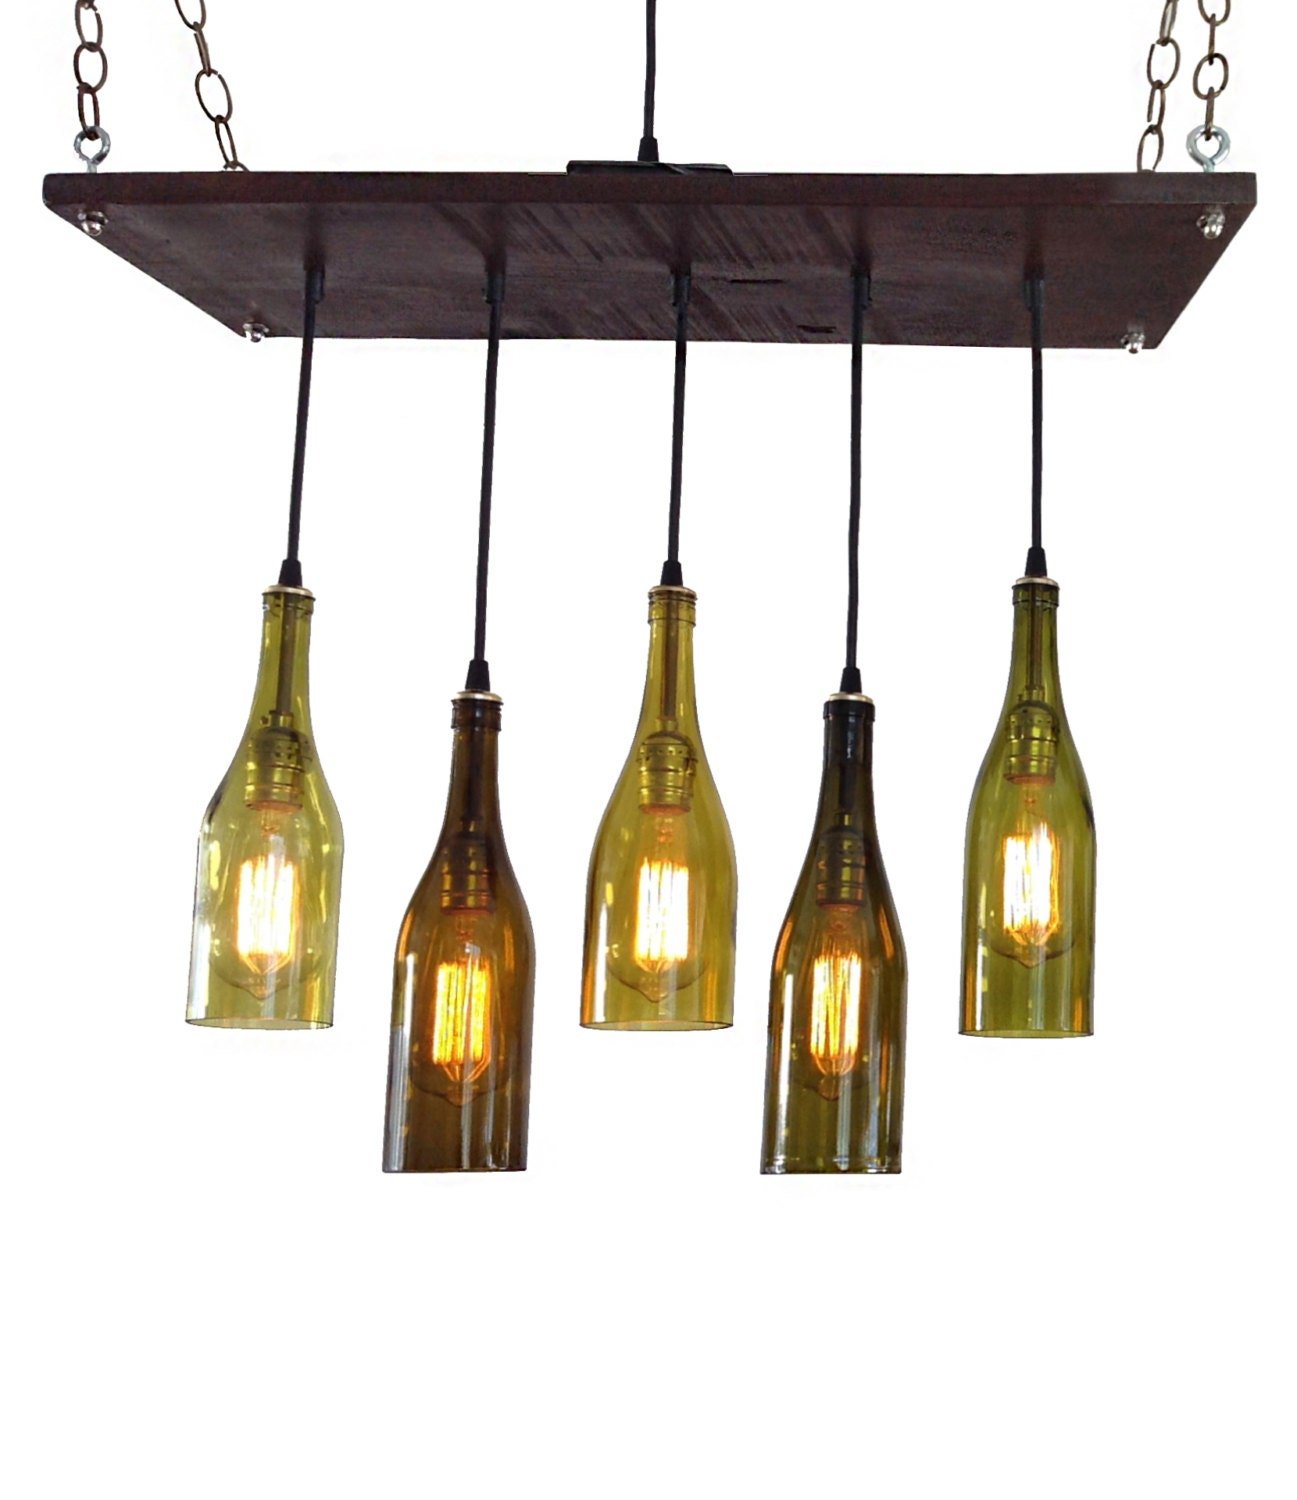 5 recycled wine bottle pendant chandelier by. Black Bedroom Furniture Sets. Home Design Ideas